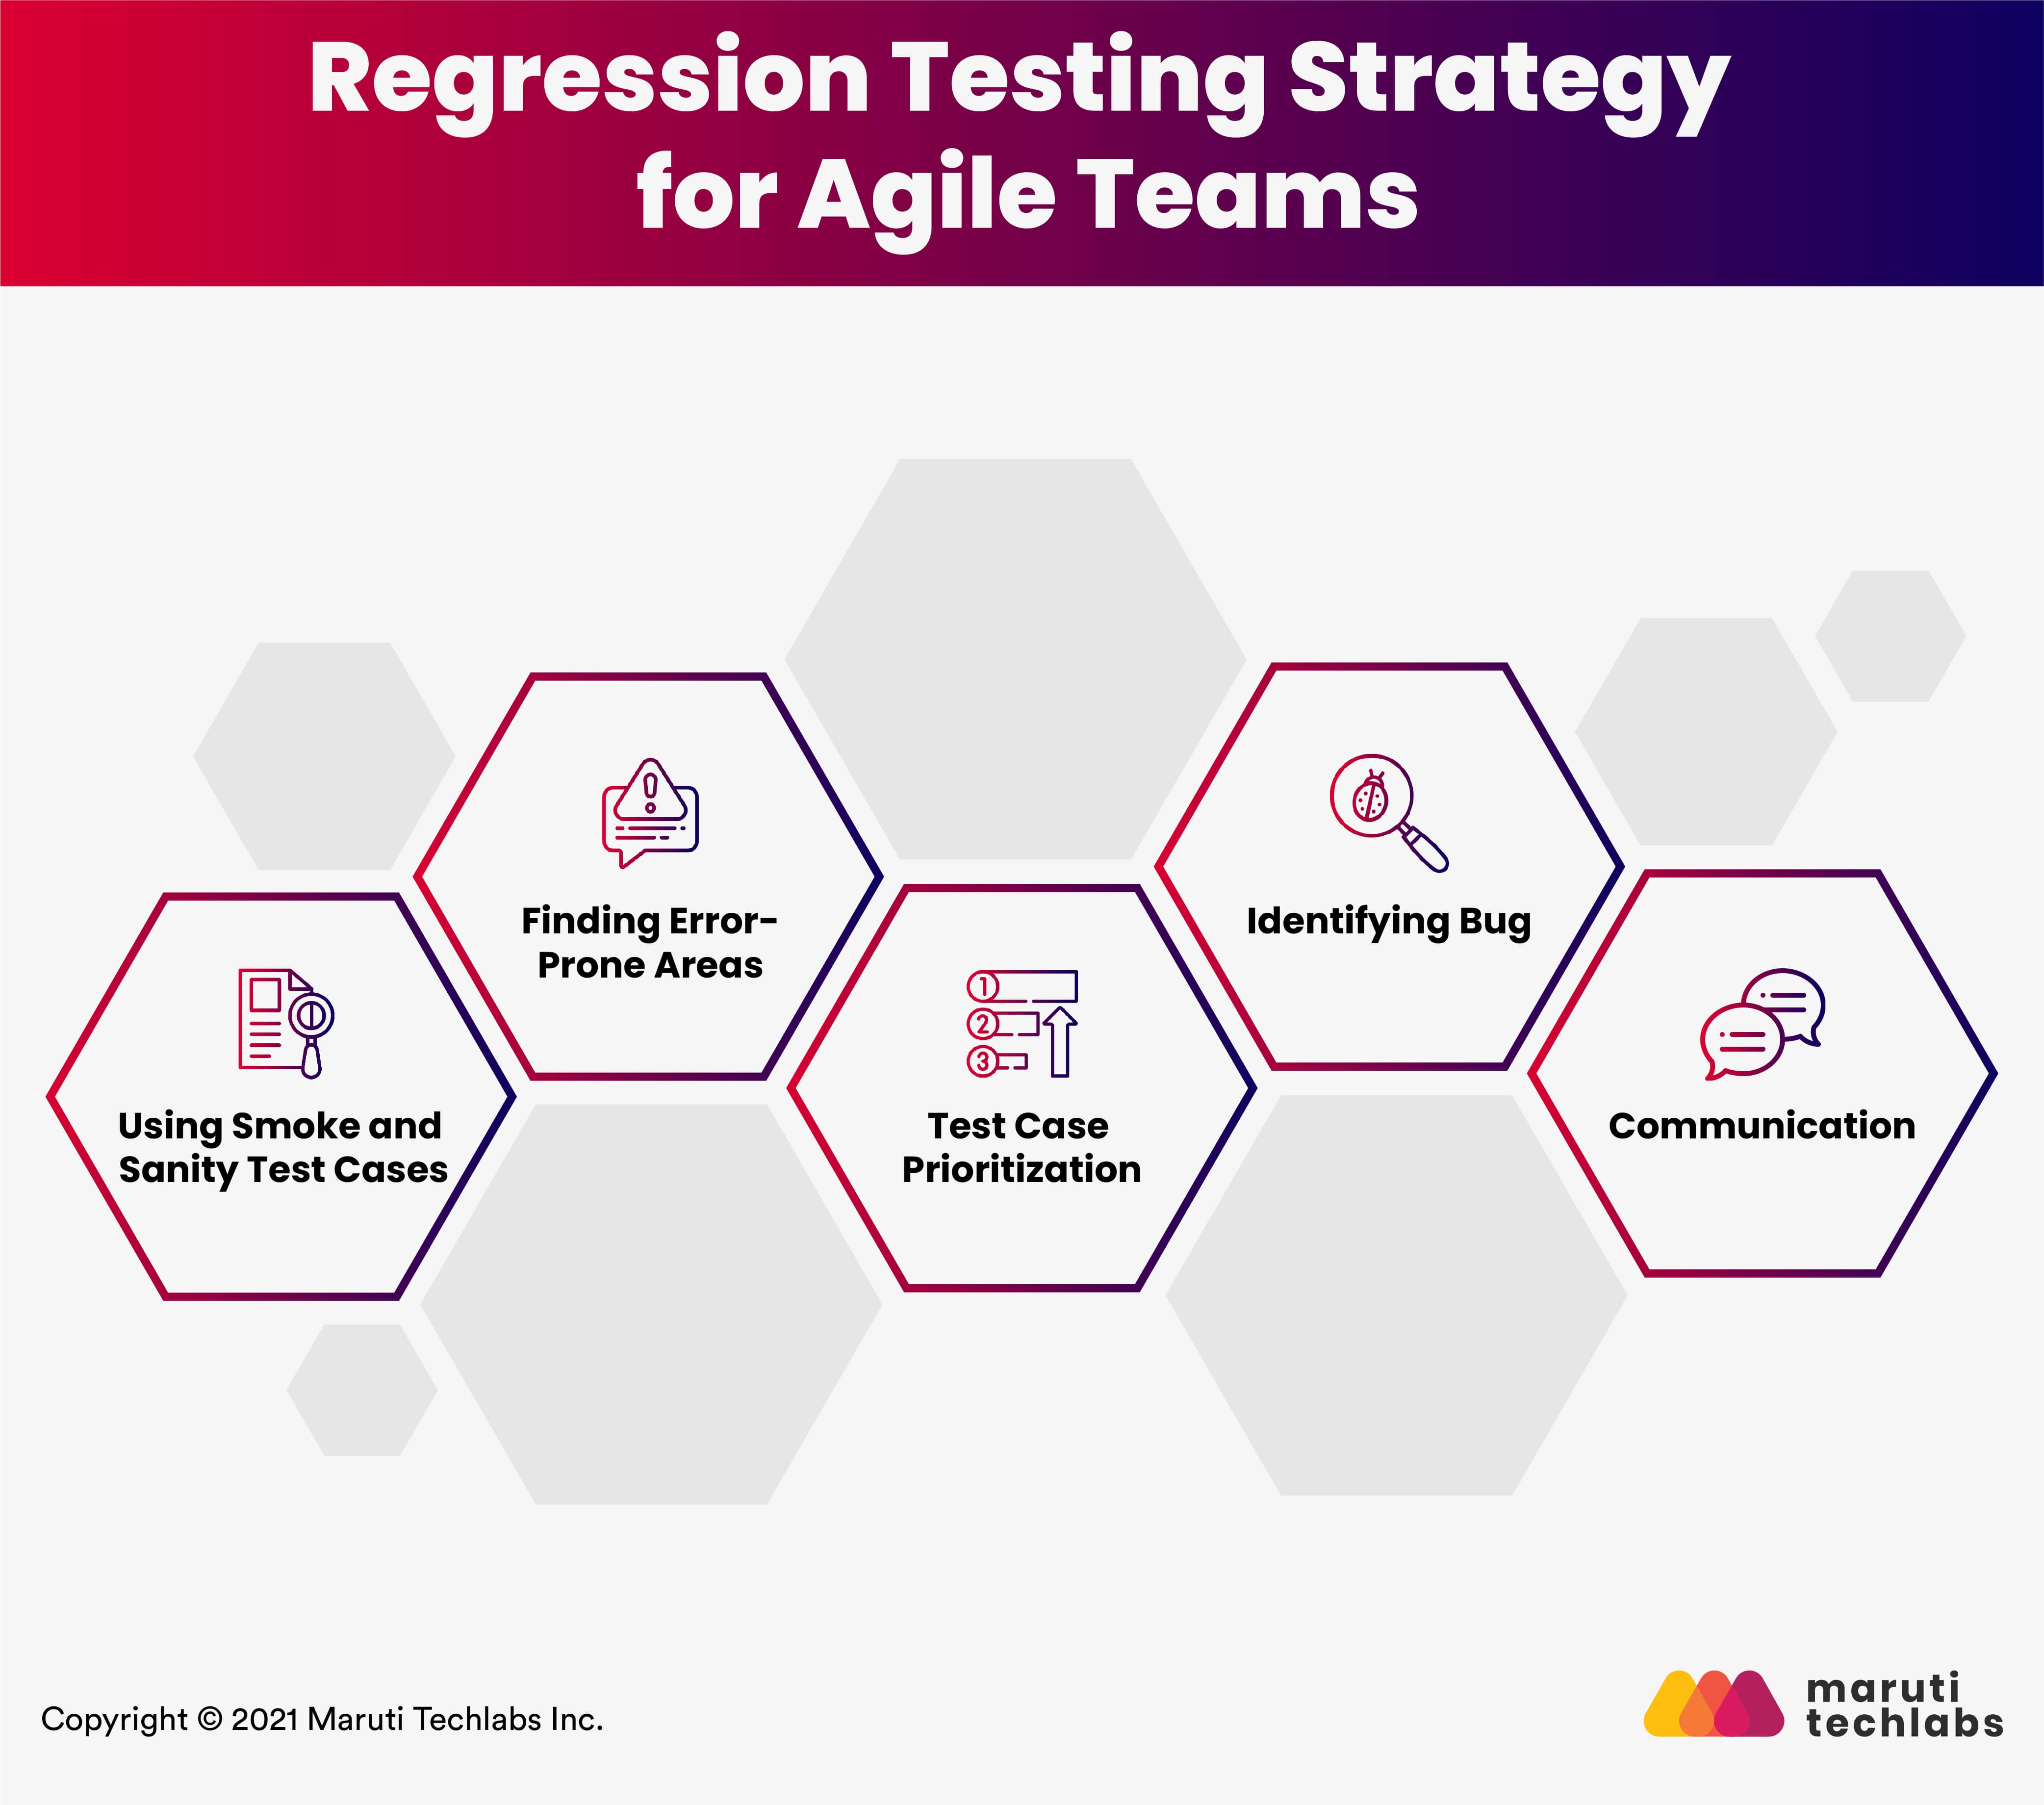 Regression Testing Strategy for Agile Teams